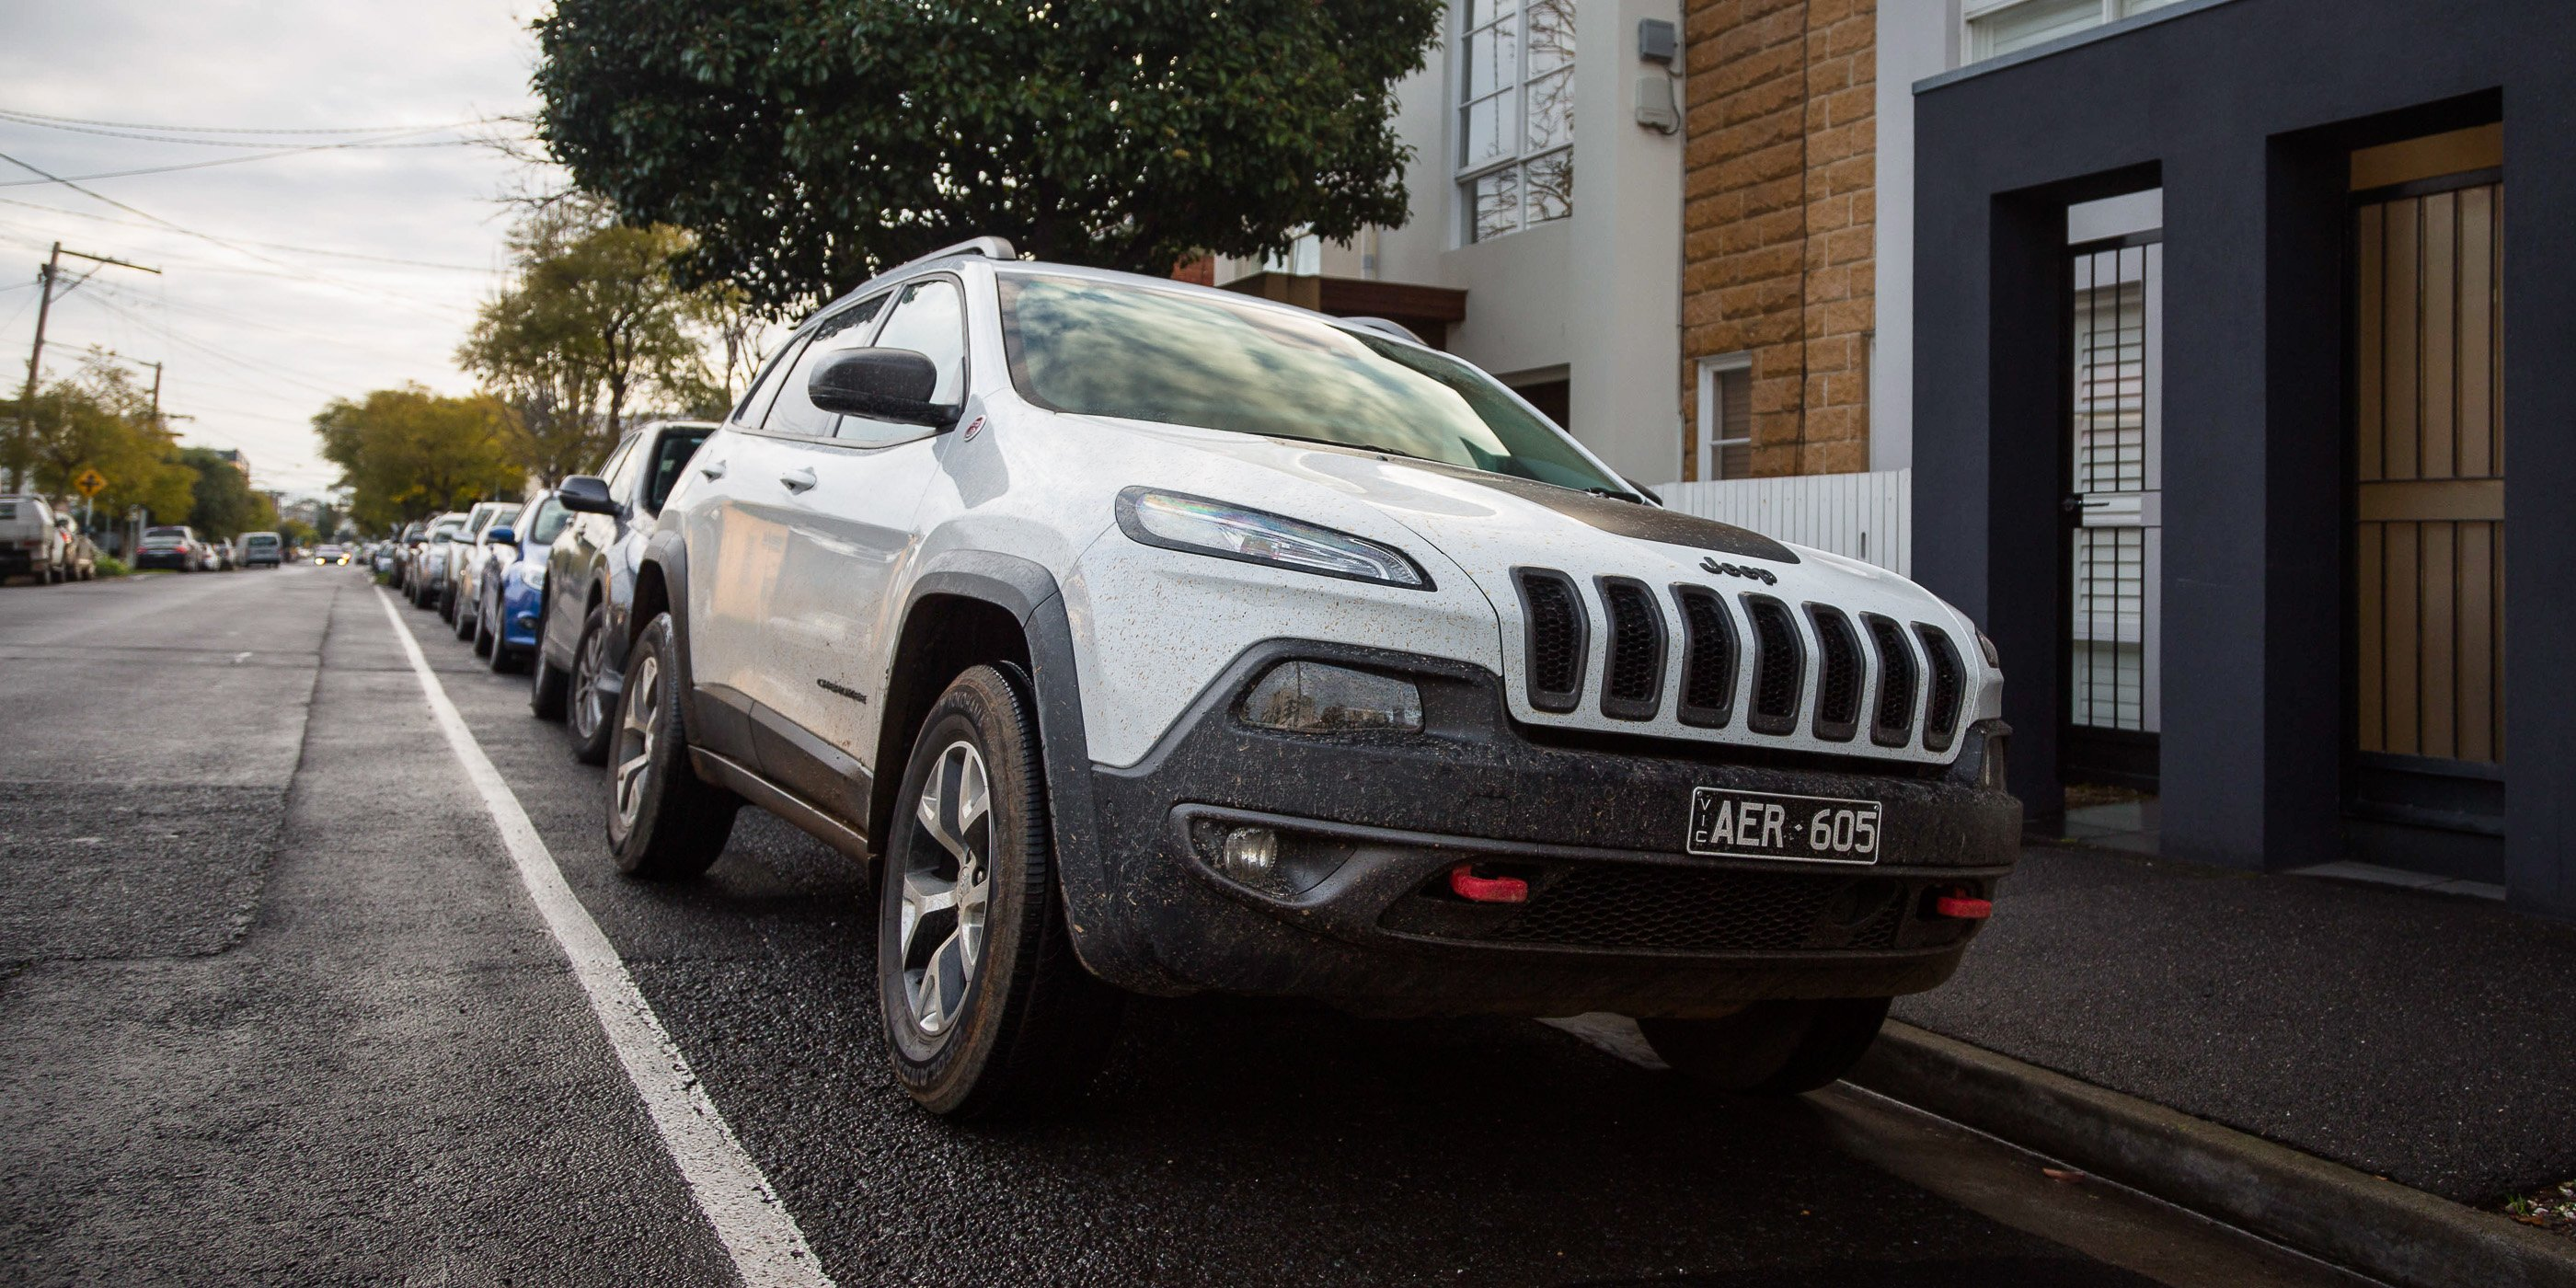 2016 jeep cherokee trailhawk review caradvice. Cars Review. Best American Auto & Cars Review